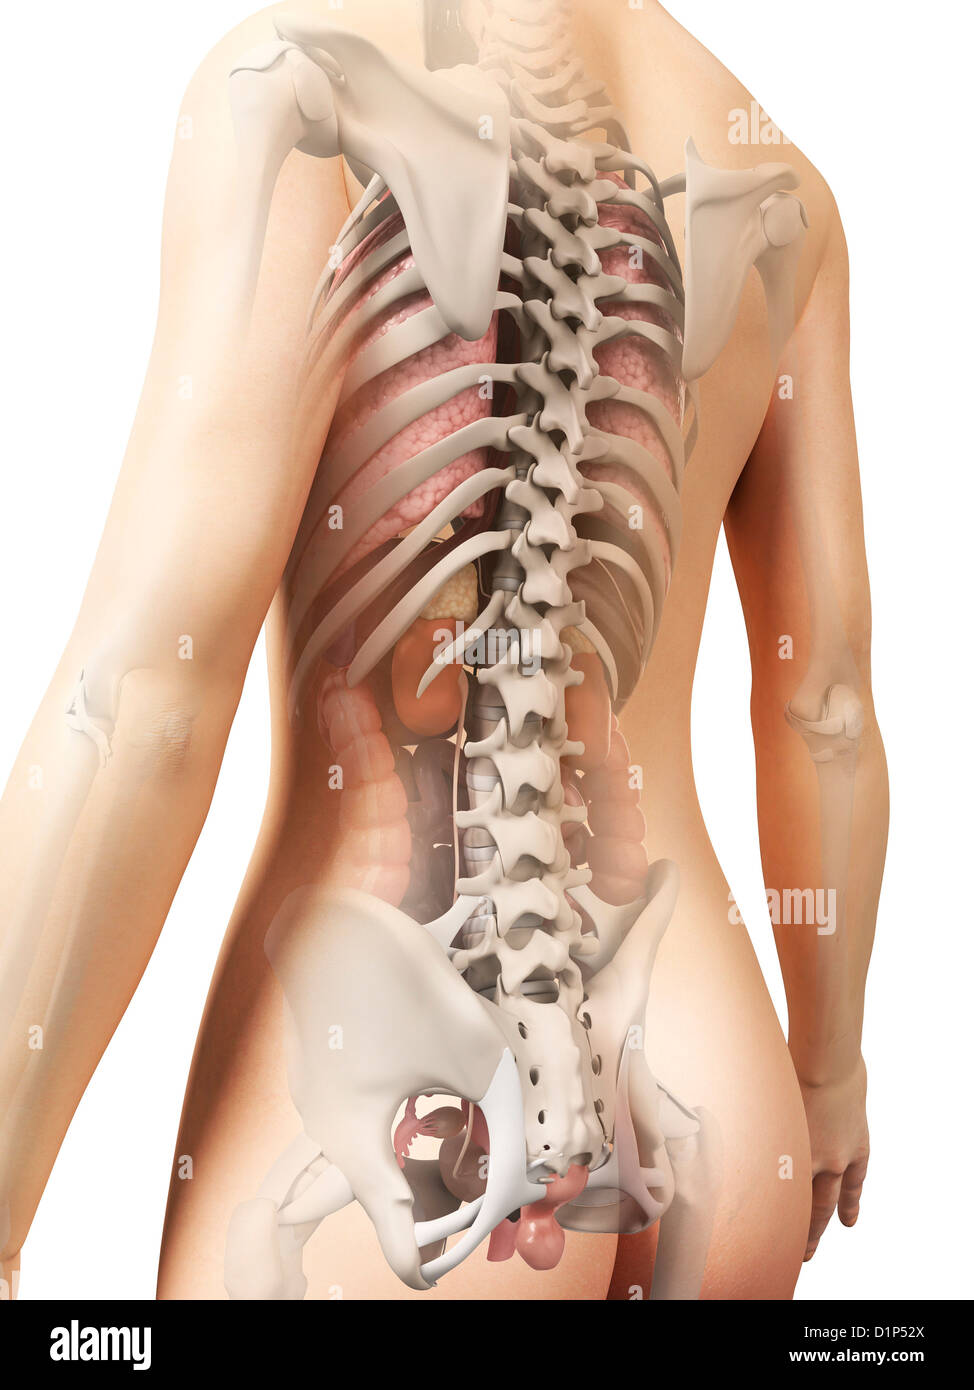 Anatomy Female Pelvis Stock Photos Anatomy Female Pelvis Stock